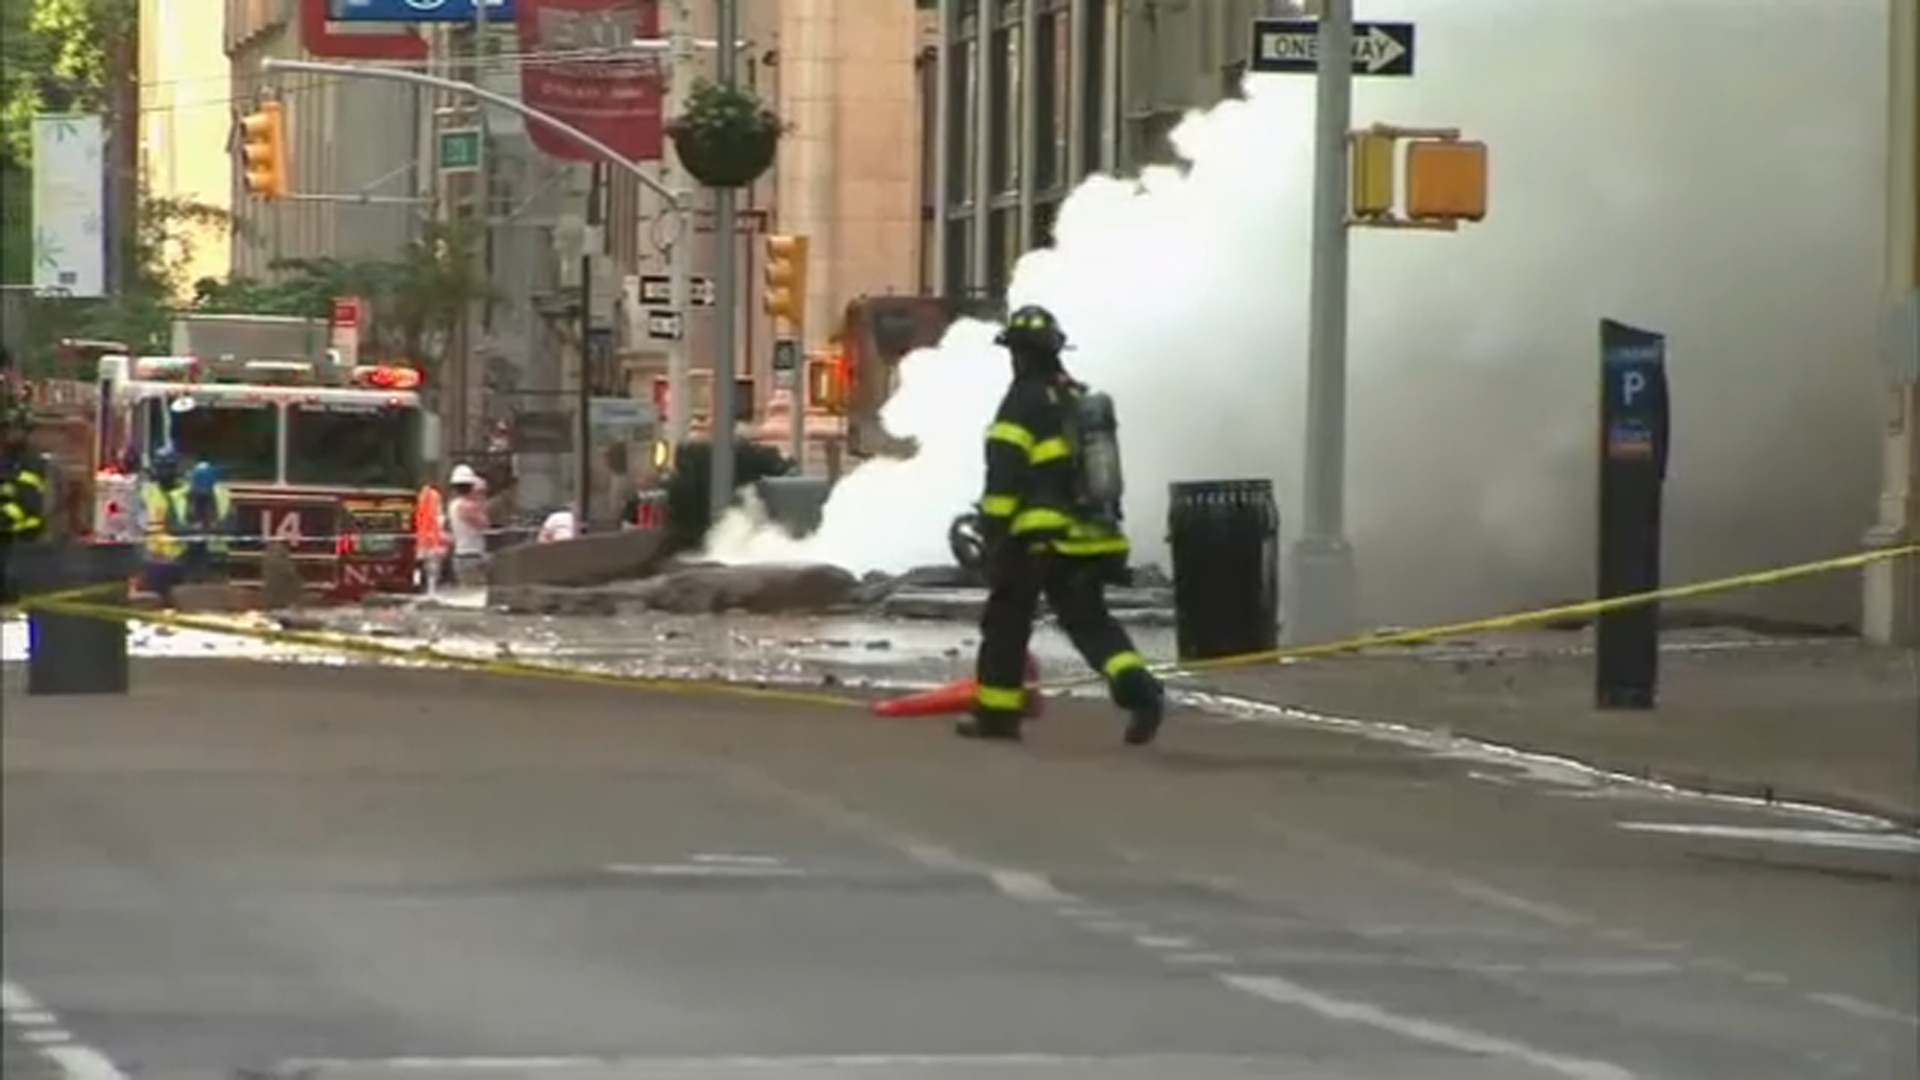 <div class='meta'><div class='origin-logo' data-origin='WABC'></div><span class='caption-text' data-credit=''>A steam pipe explosion in Manhattan's Flatiron District closed streets, forced evacuations and sent a huge plume of steam high into the air on July 19, 2018.</span></div>